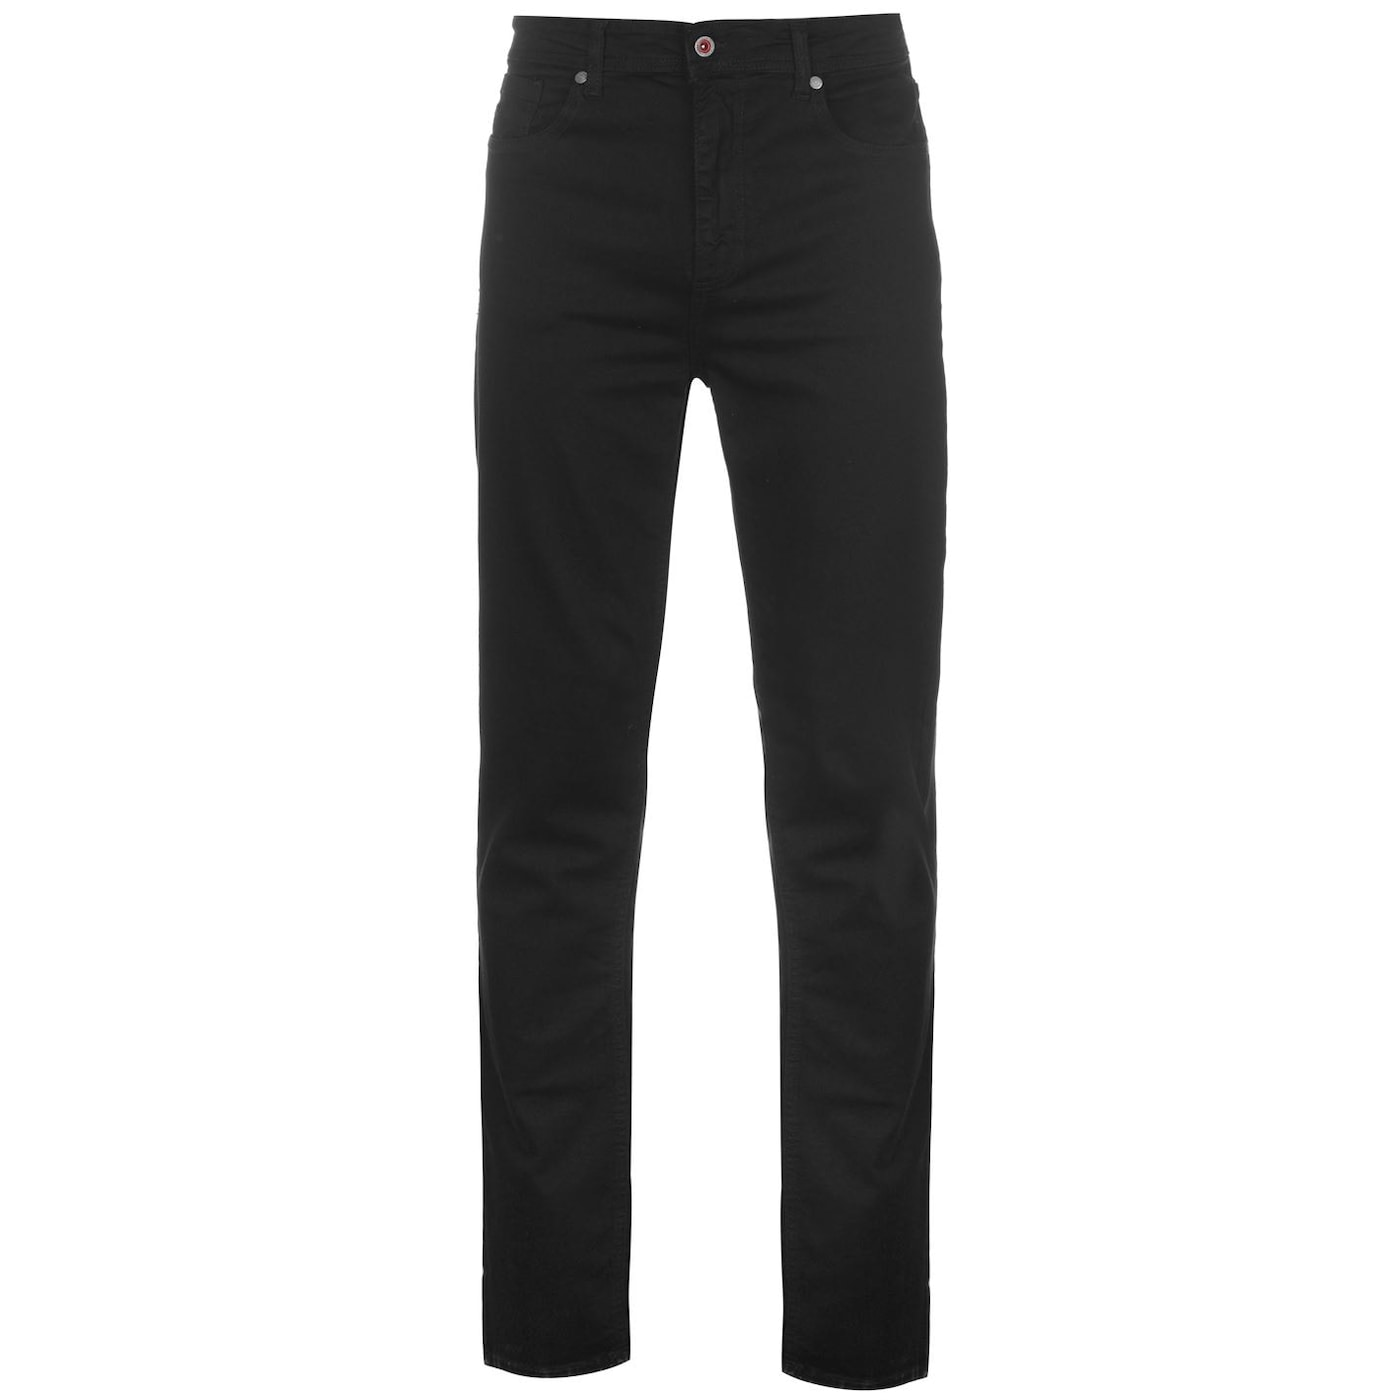 D555 Mens Big Size Tapered Fit Stretch Jeans In Black Claude